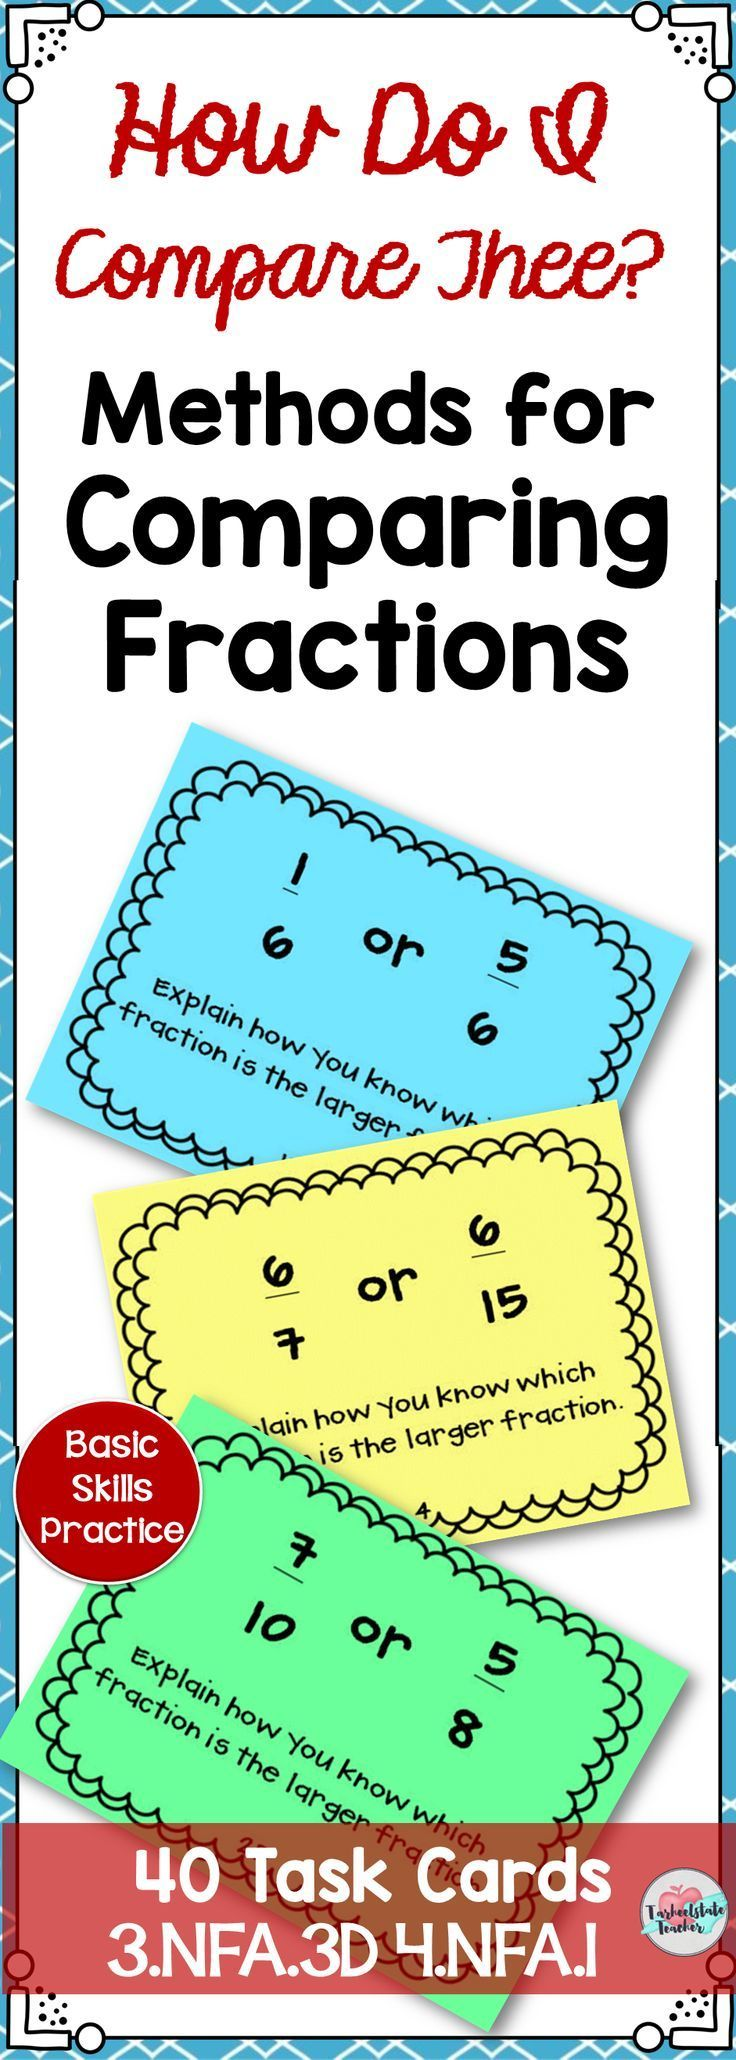 Math Aids Worksheet Pdf  Best Math For Third Grade Images On Pinterest  Teaching  Mcgraw Hill World Geography Worksheet Answers Excel with Perimeter Of A Triangle Worksheets Pdf Comparing Fractions And Ordering Fractions Task Cards Nfad Nfa Shapes Worksheets Kids Excel